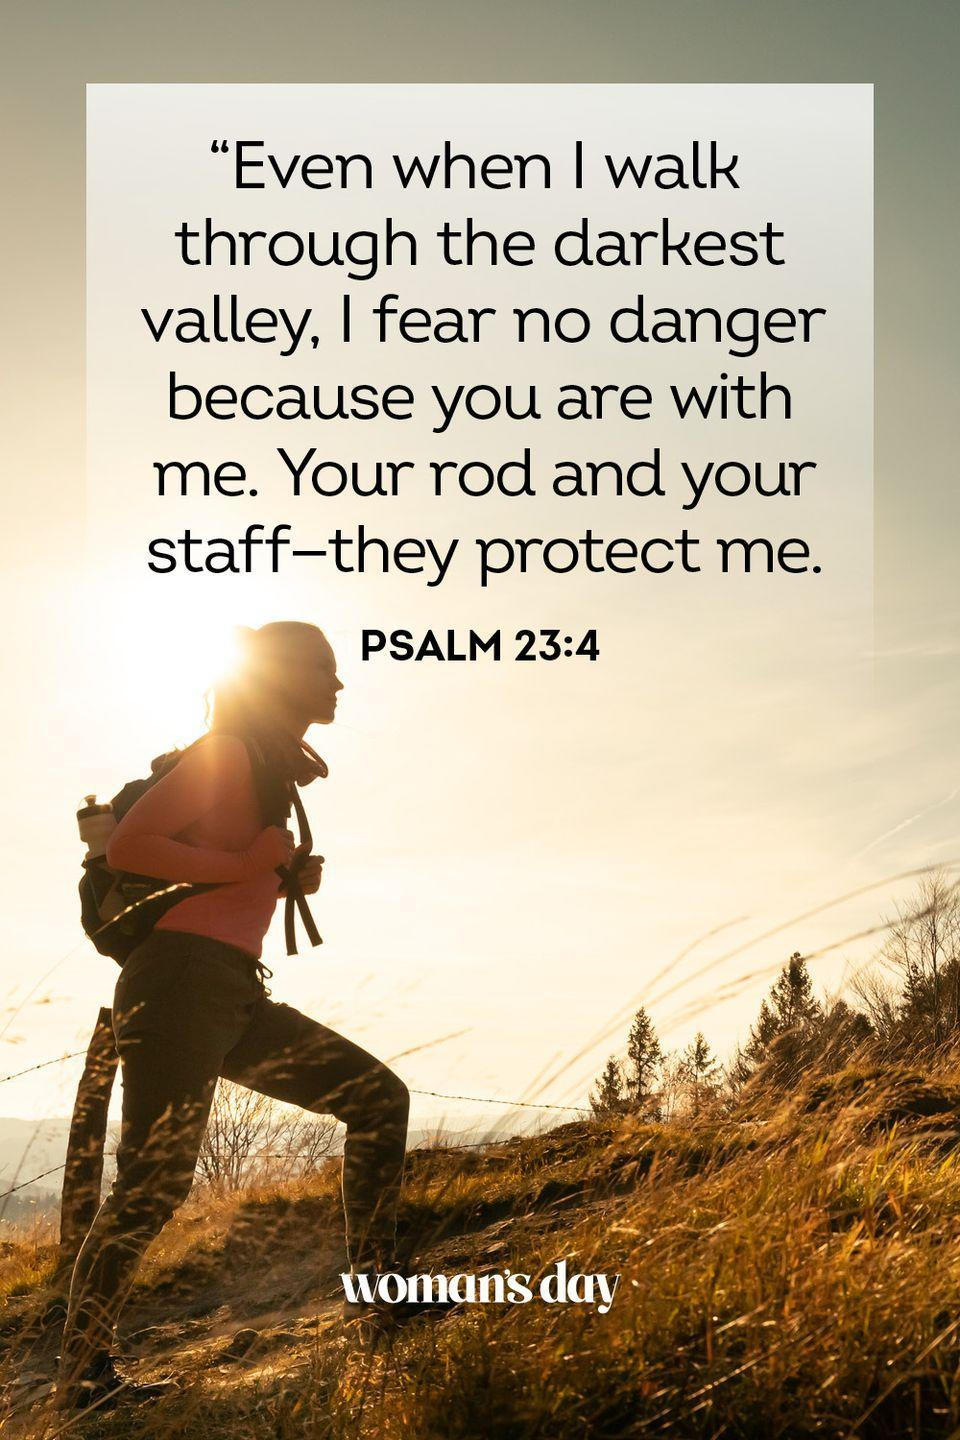 """<p>""""Even when I walk through the darkest valley, I fear no danger because you are with me. Your rod and your staff — they protect me.""""</p><p><strong>The Good News: </strong>Even the hardest moments in your life will be made better by having God by your side. He will not let you down.</p>"""